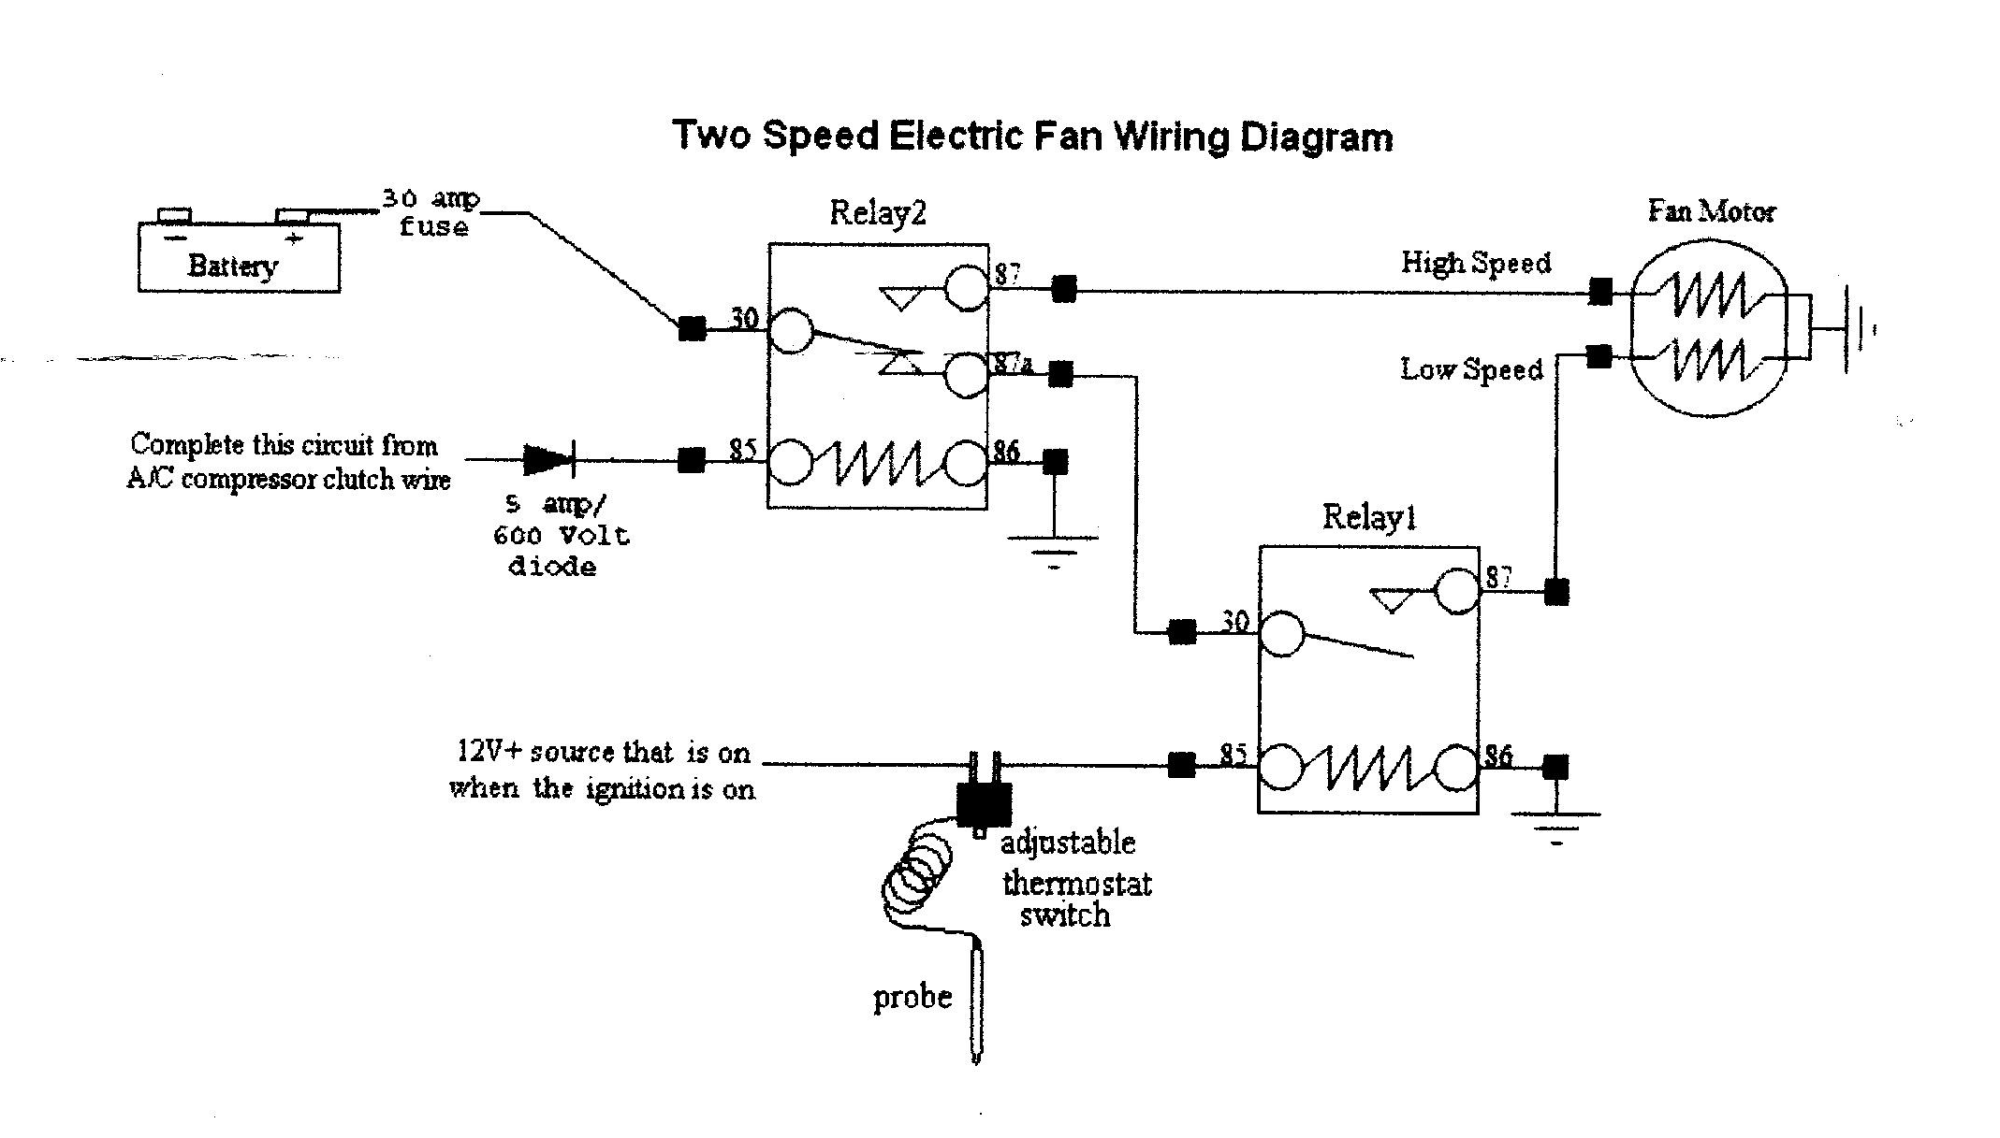 hight resolution of transmission for 1995 cadillac deville wiring diagrams wiring libraryelectric radiator fan wiring diagram 1995 mercury villager